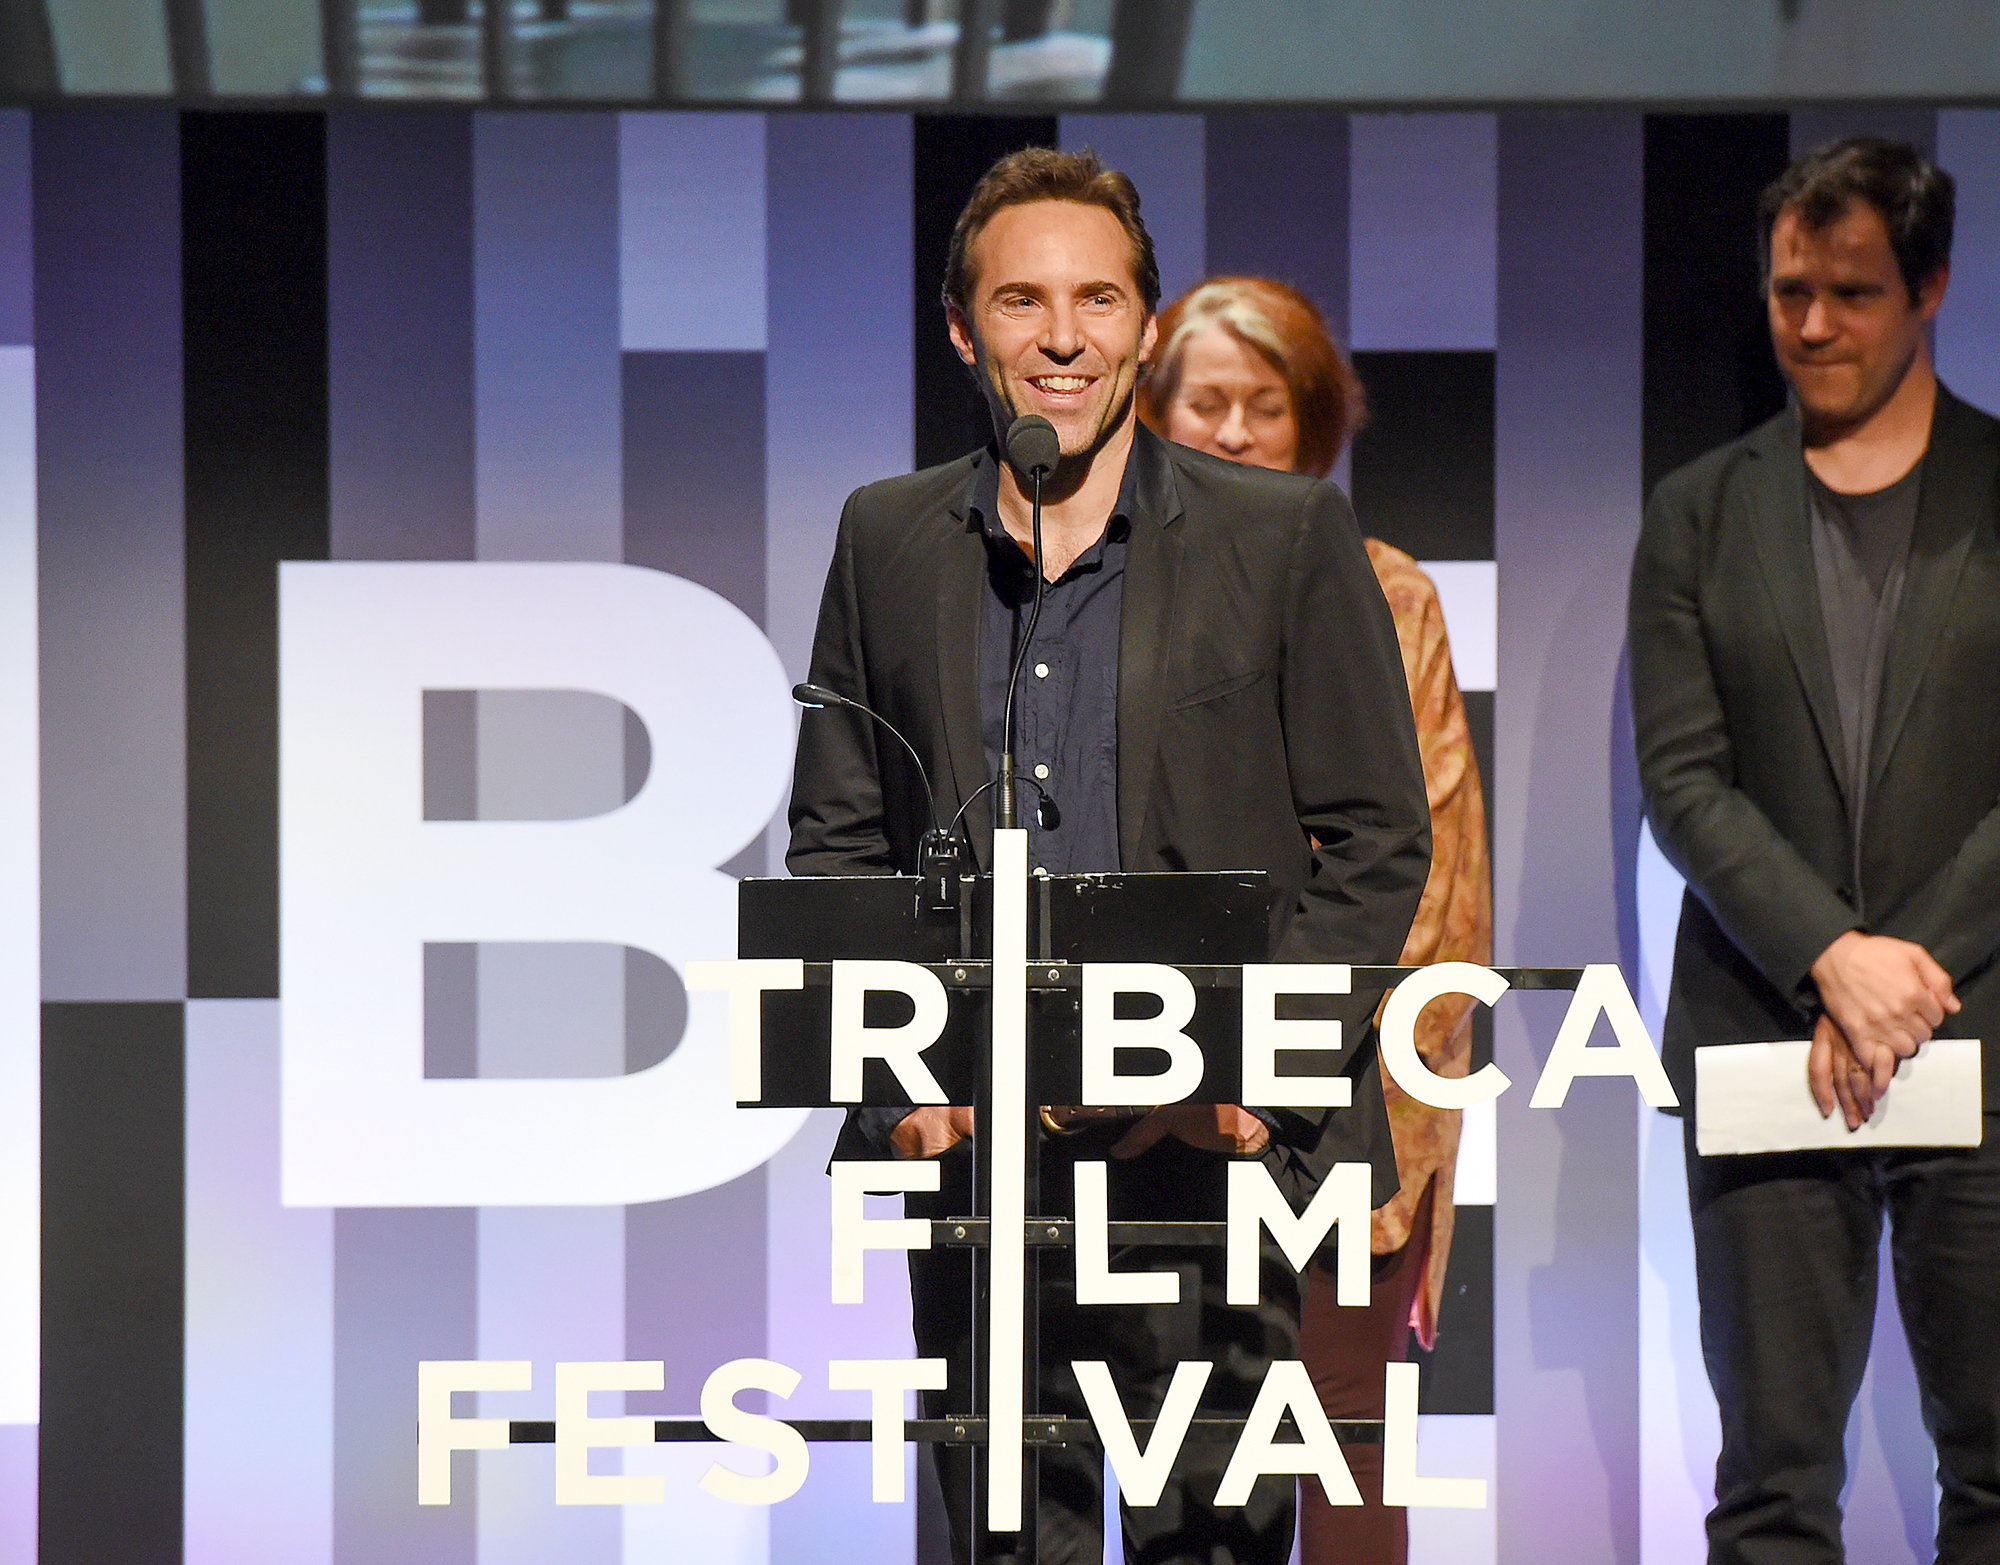 Awards Night - 2017 Tribeca Film Festival